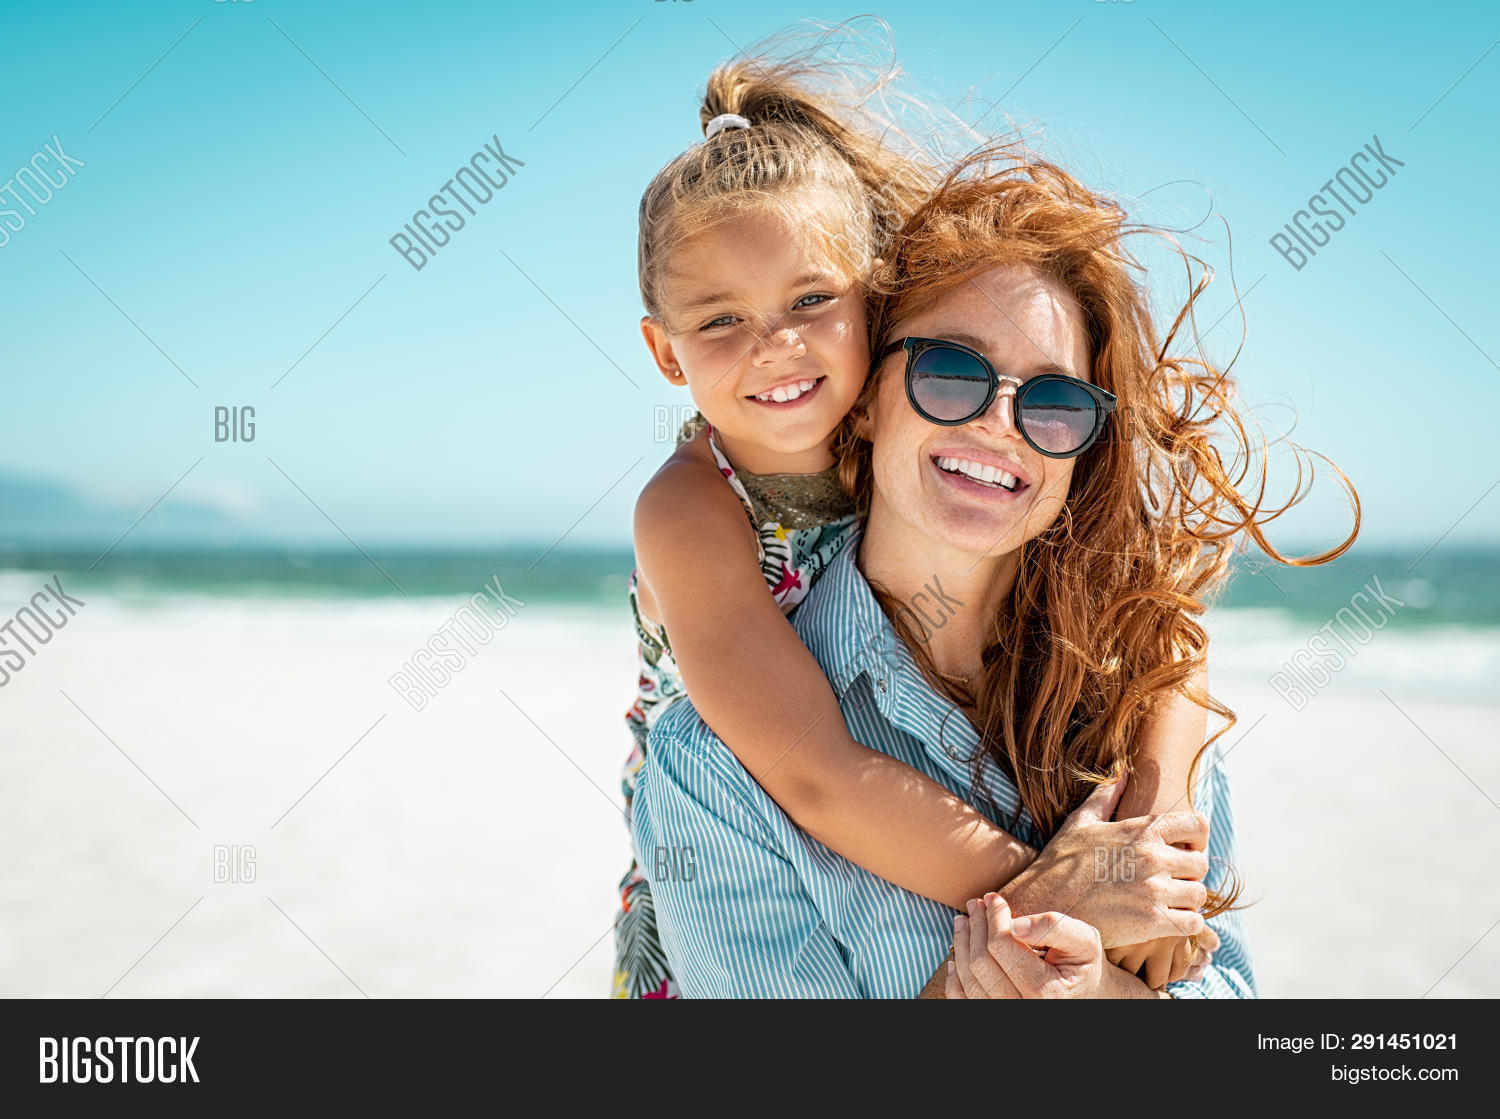 affection,aunt,beach,beautiful,cheerful,child,copy space,cute,daughter,daughter and mother,day,embrace,embracing,family,fun,girl,happy,holiday,hug,joy,kid,little,looking,looking at camera,love,loving family,mature,mom,mother,niece,outdoor,parent,people,piggyback,playful,playing,portrait,sea,shades,sisters,smile,summer,summer holiday,sun,sunglasses,together,togetherness,vacation,windy,woman